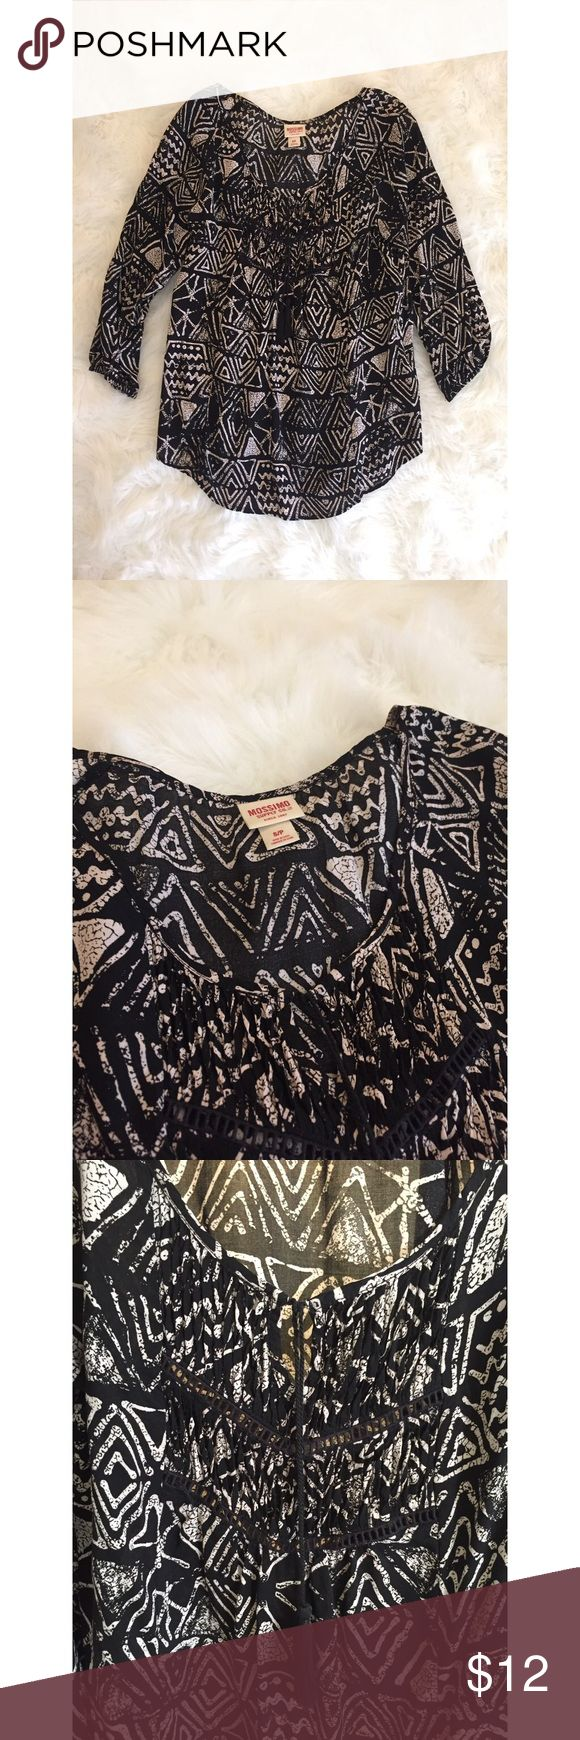 Black Aztec Blouse Mossimo Black and Cream Aztec Blouse. Flowy top with small key hole, small lace detail in the front, and two black tassels. 100% Rayon. Wore only a few times, in great condition! Mossimo Supply Co Tops Blouses